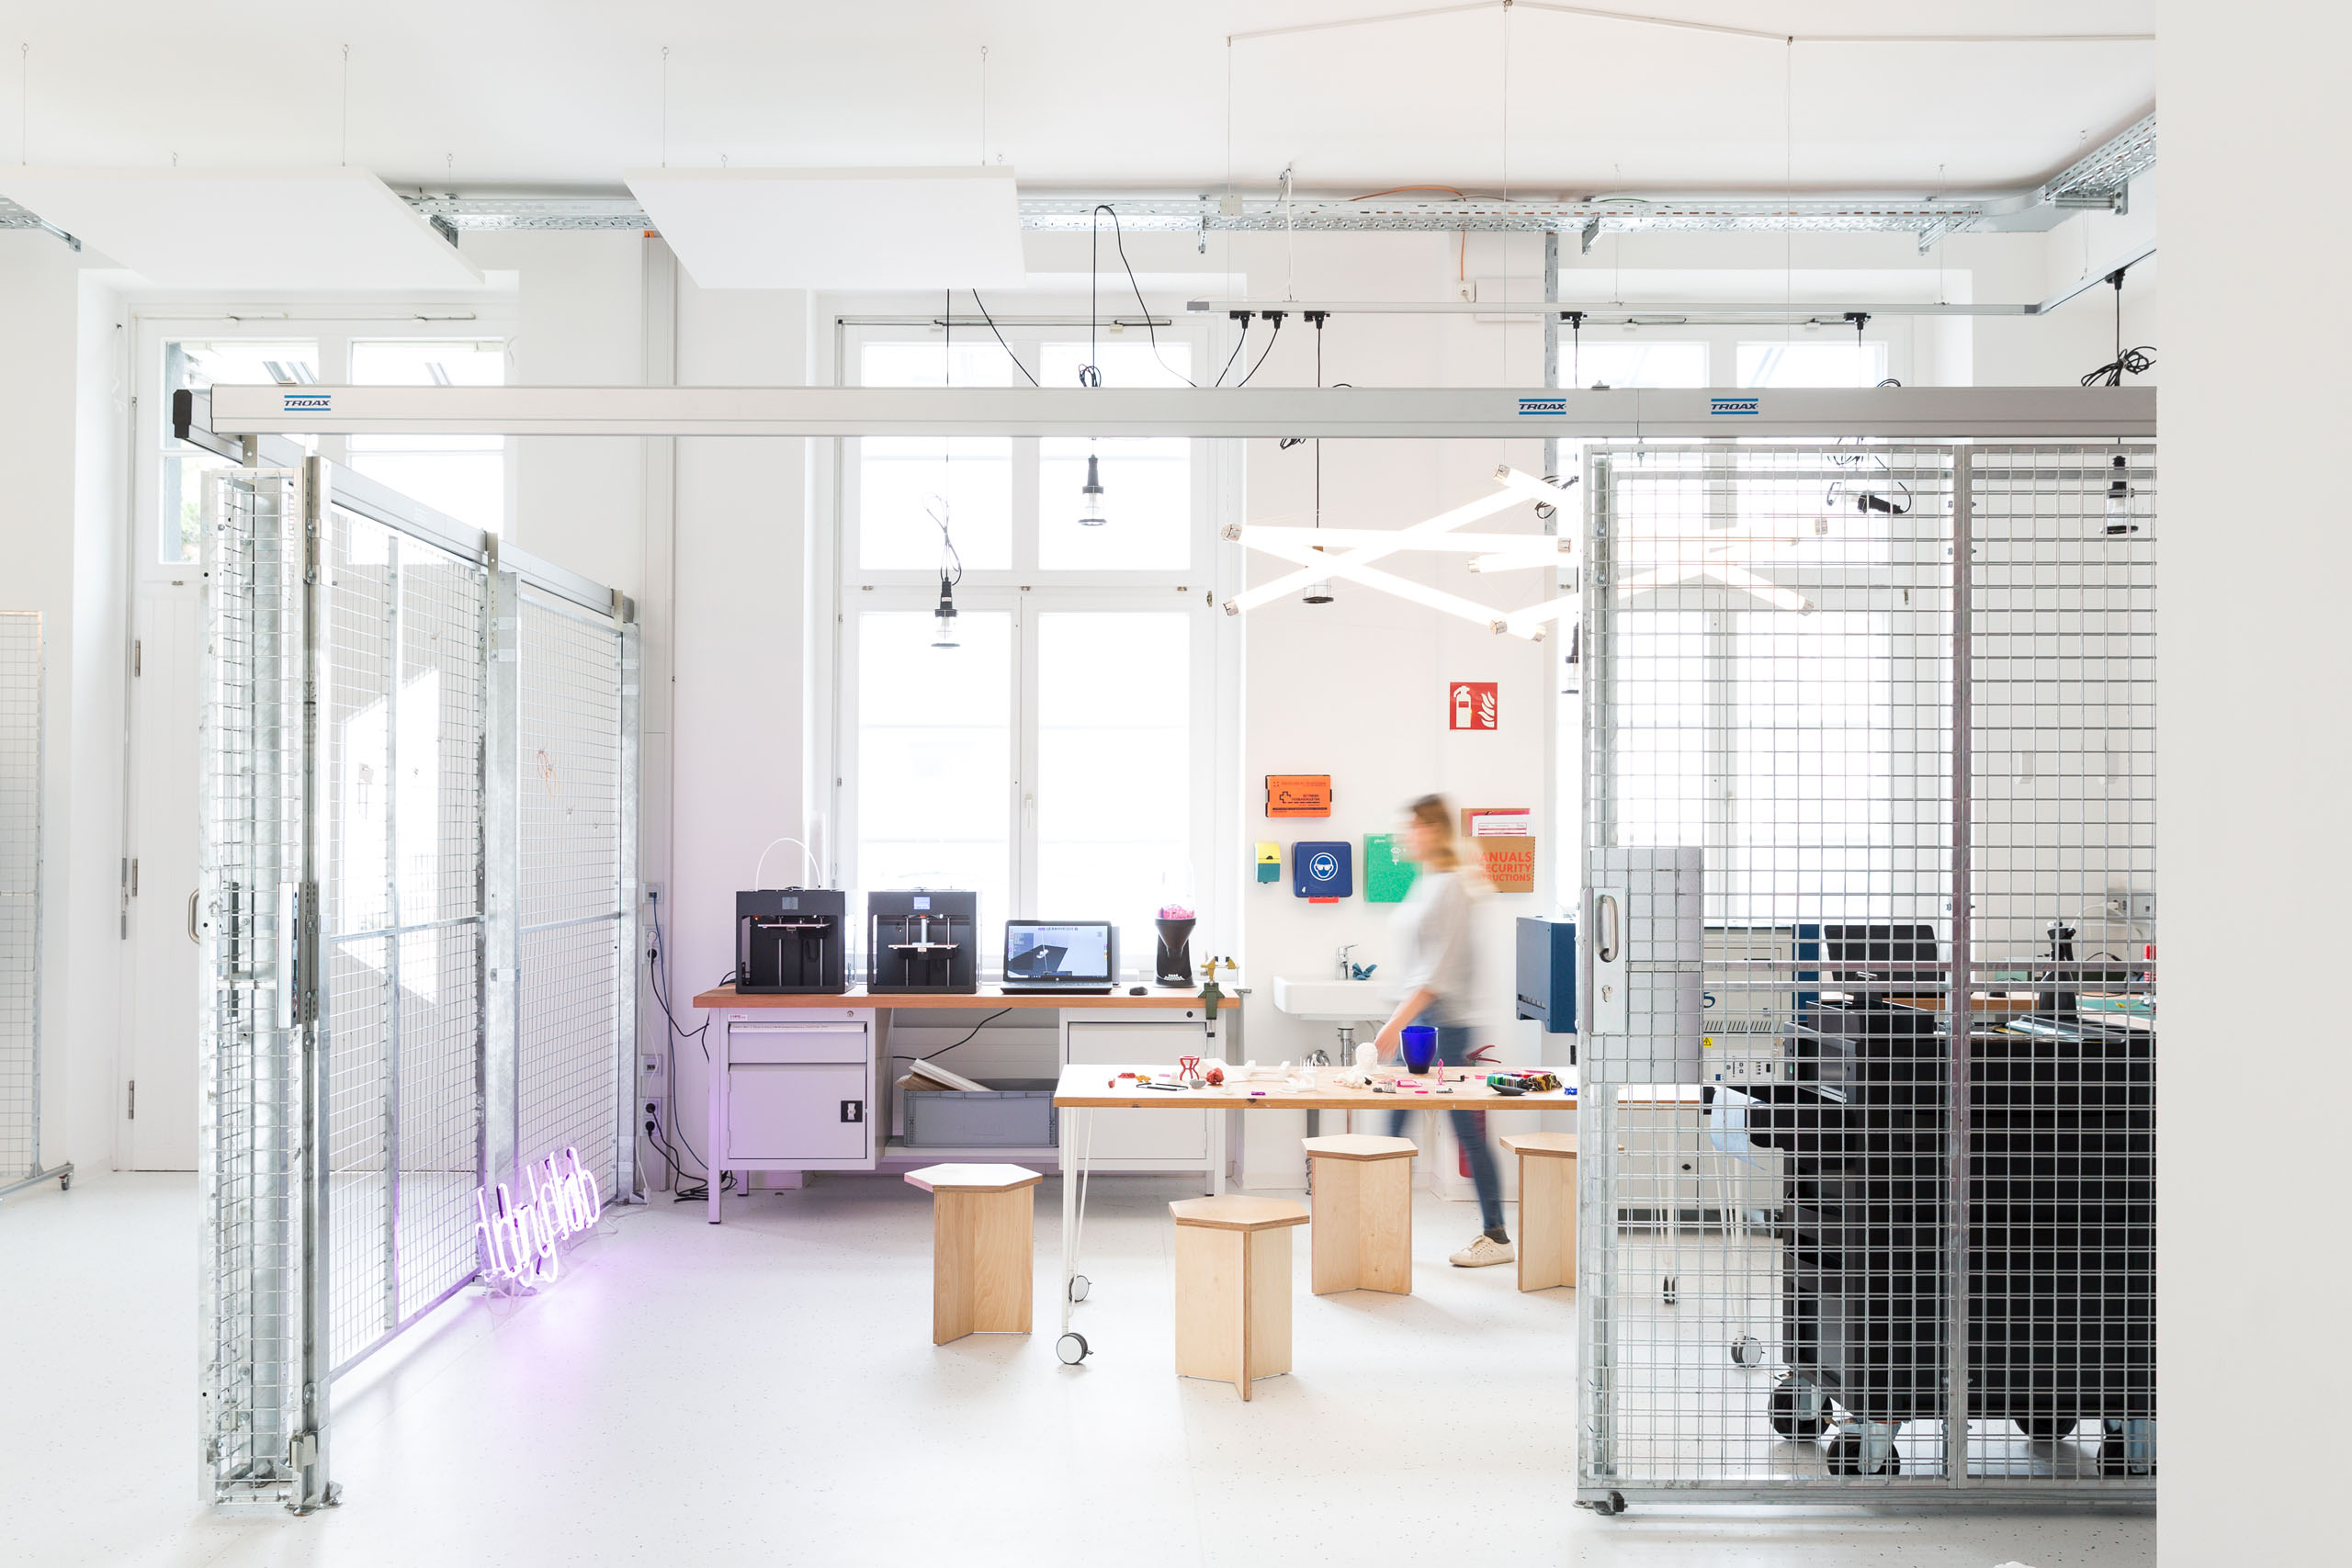 The interior of a lab working space with a person walking through.